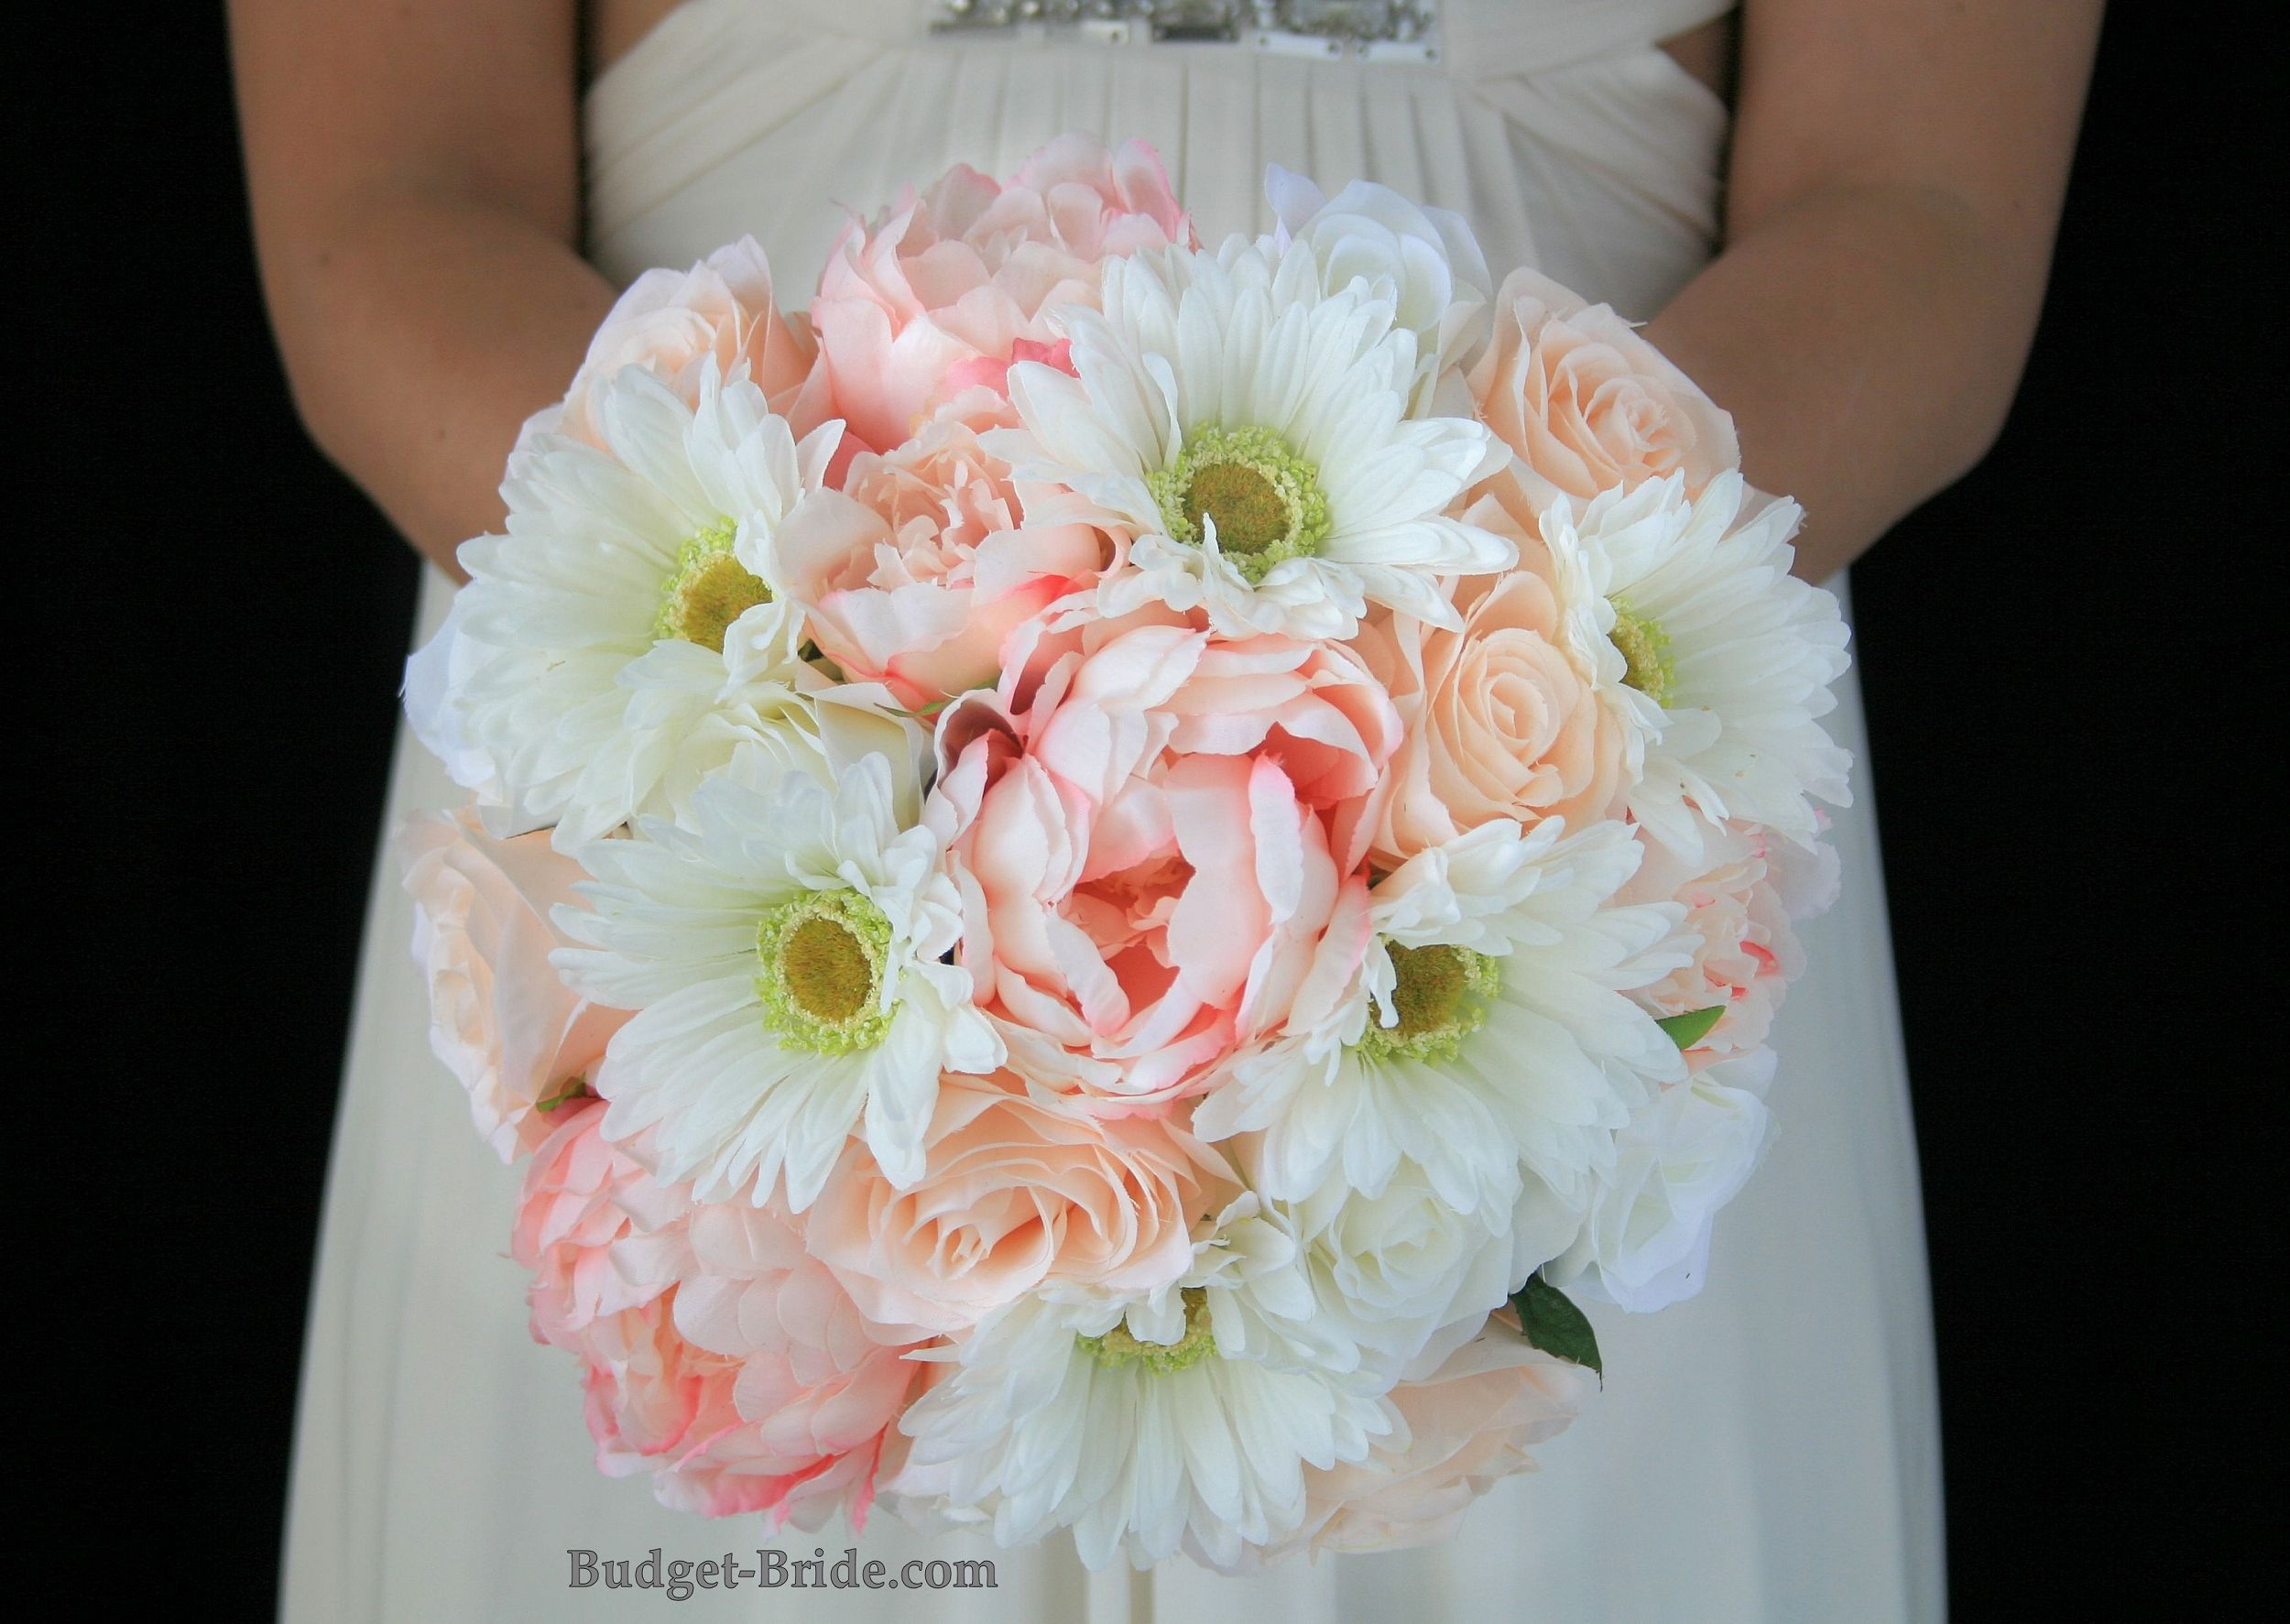 Blush Pink and Peach wedding bouquet accented with white gerbera daisies